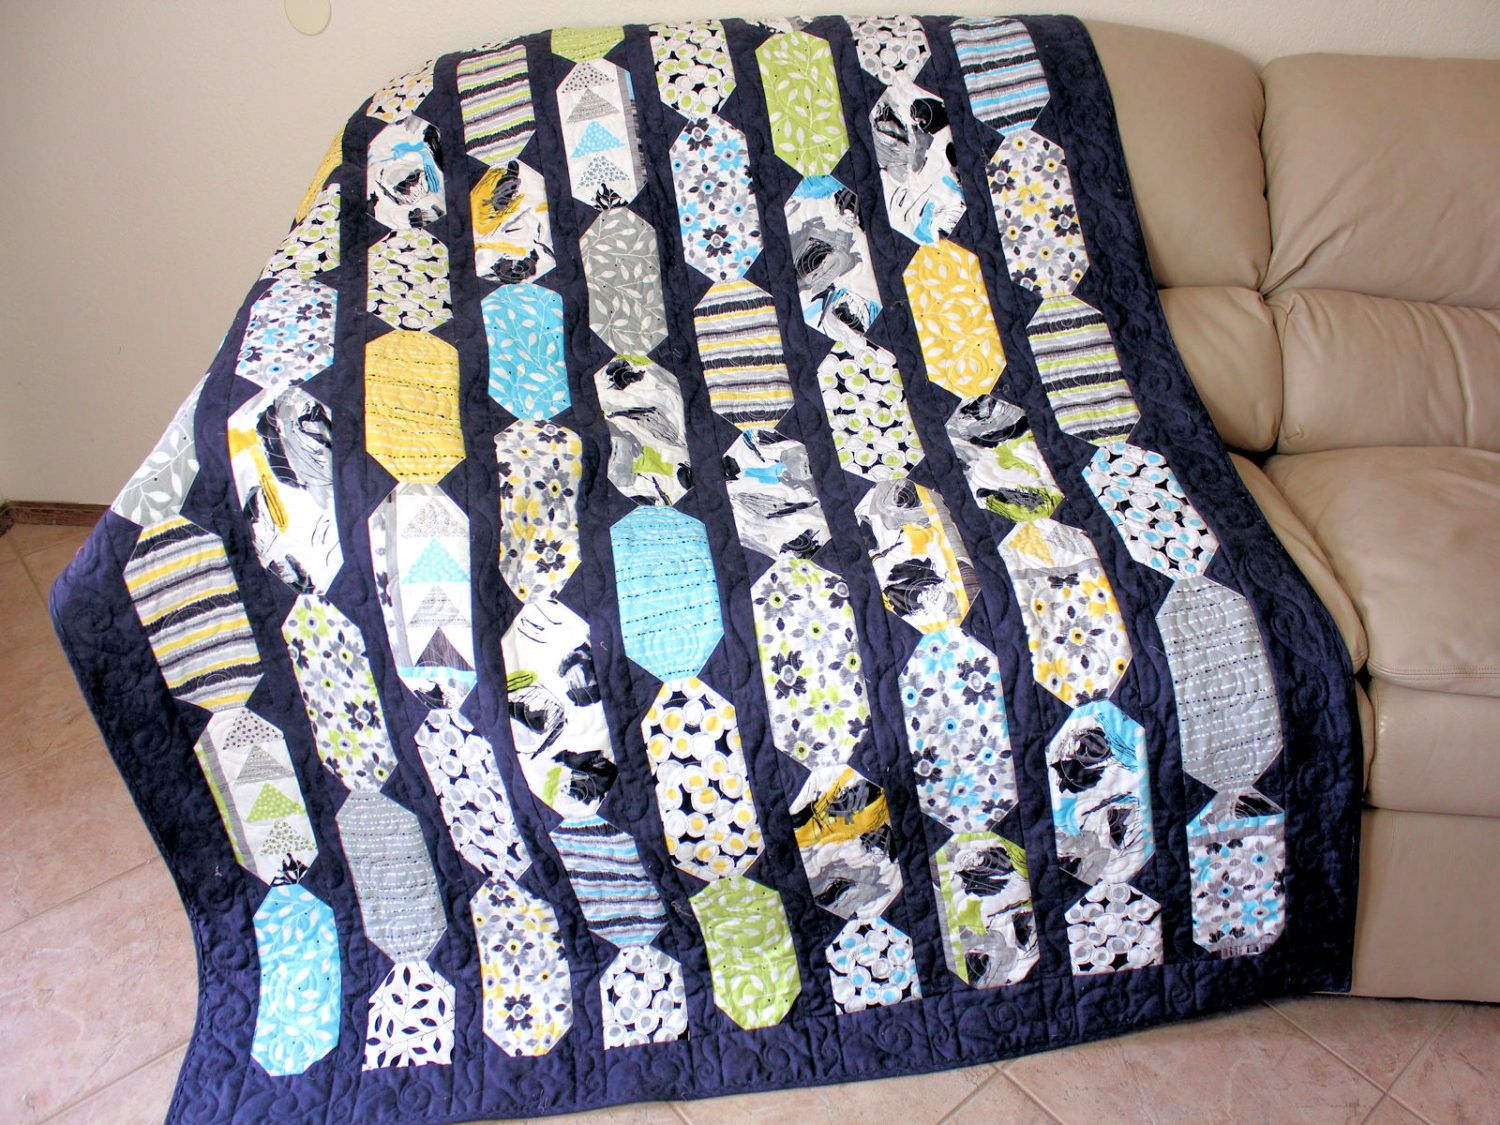 Sofa Throw Wall Hanging or Throw Hand Quilted Lap Quilt Lap Quilt Blue and Coral Patchwork